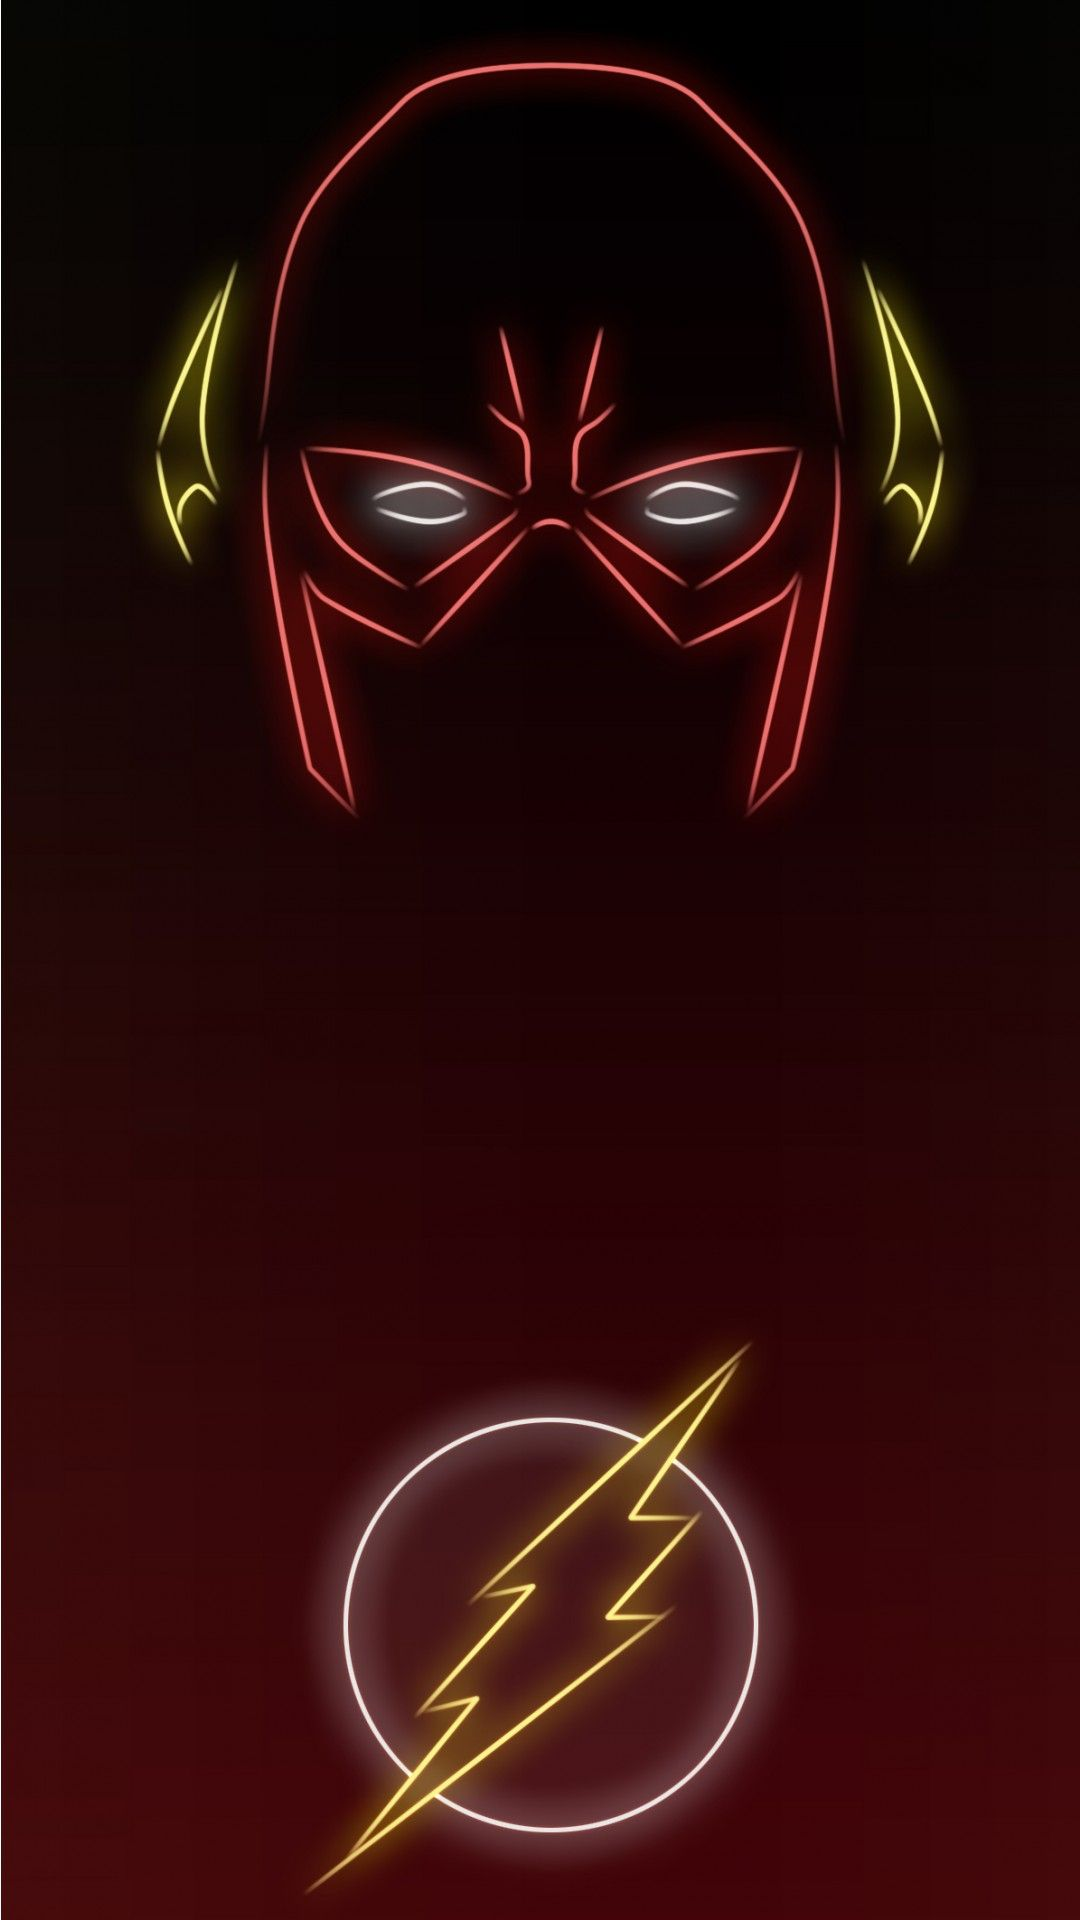 neon light the flash wallpapers 1080 x 1920 wallpapers